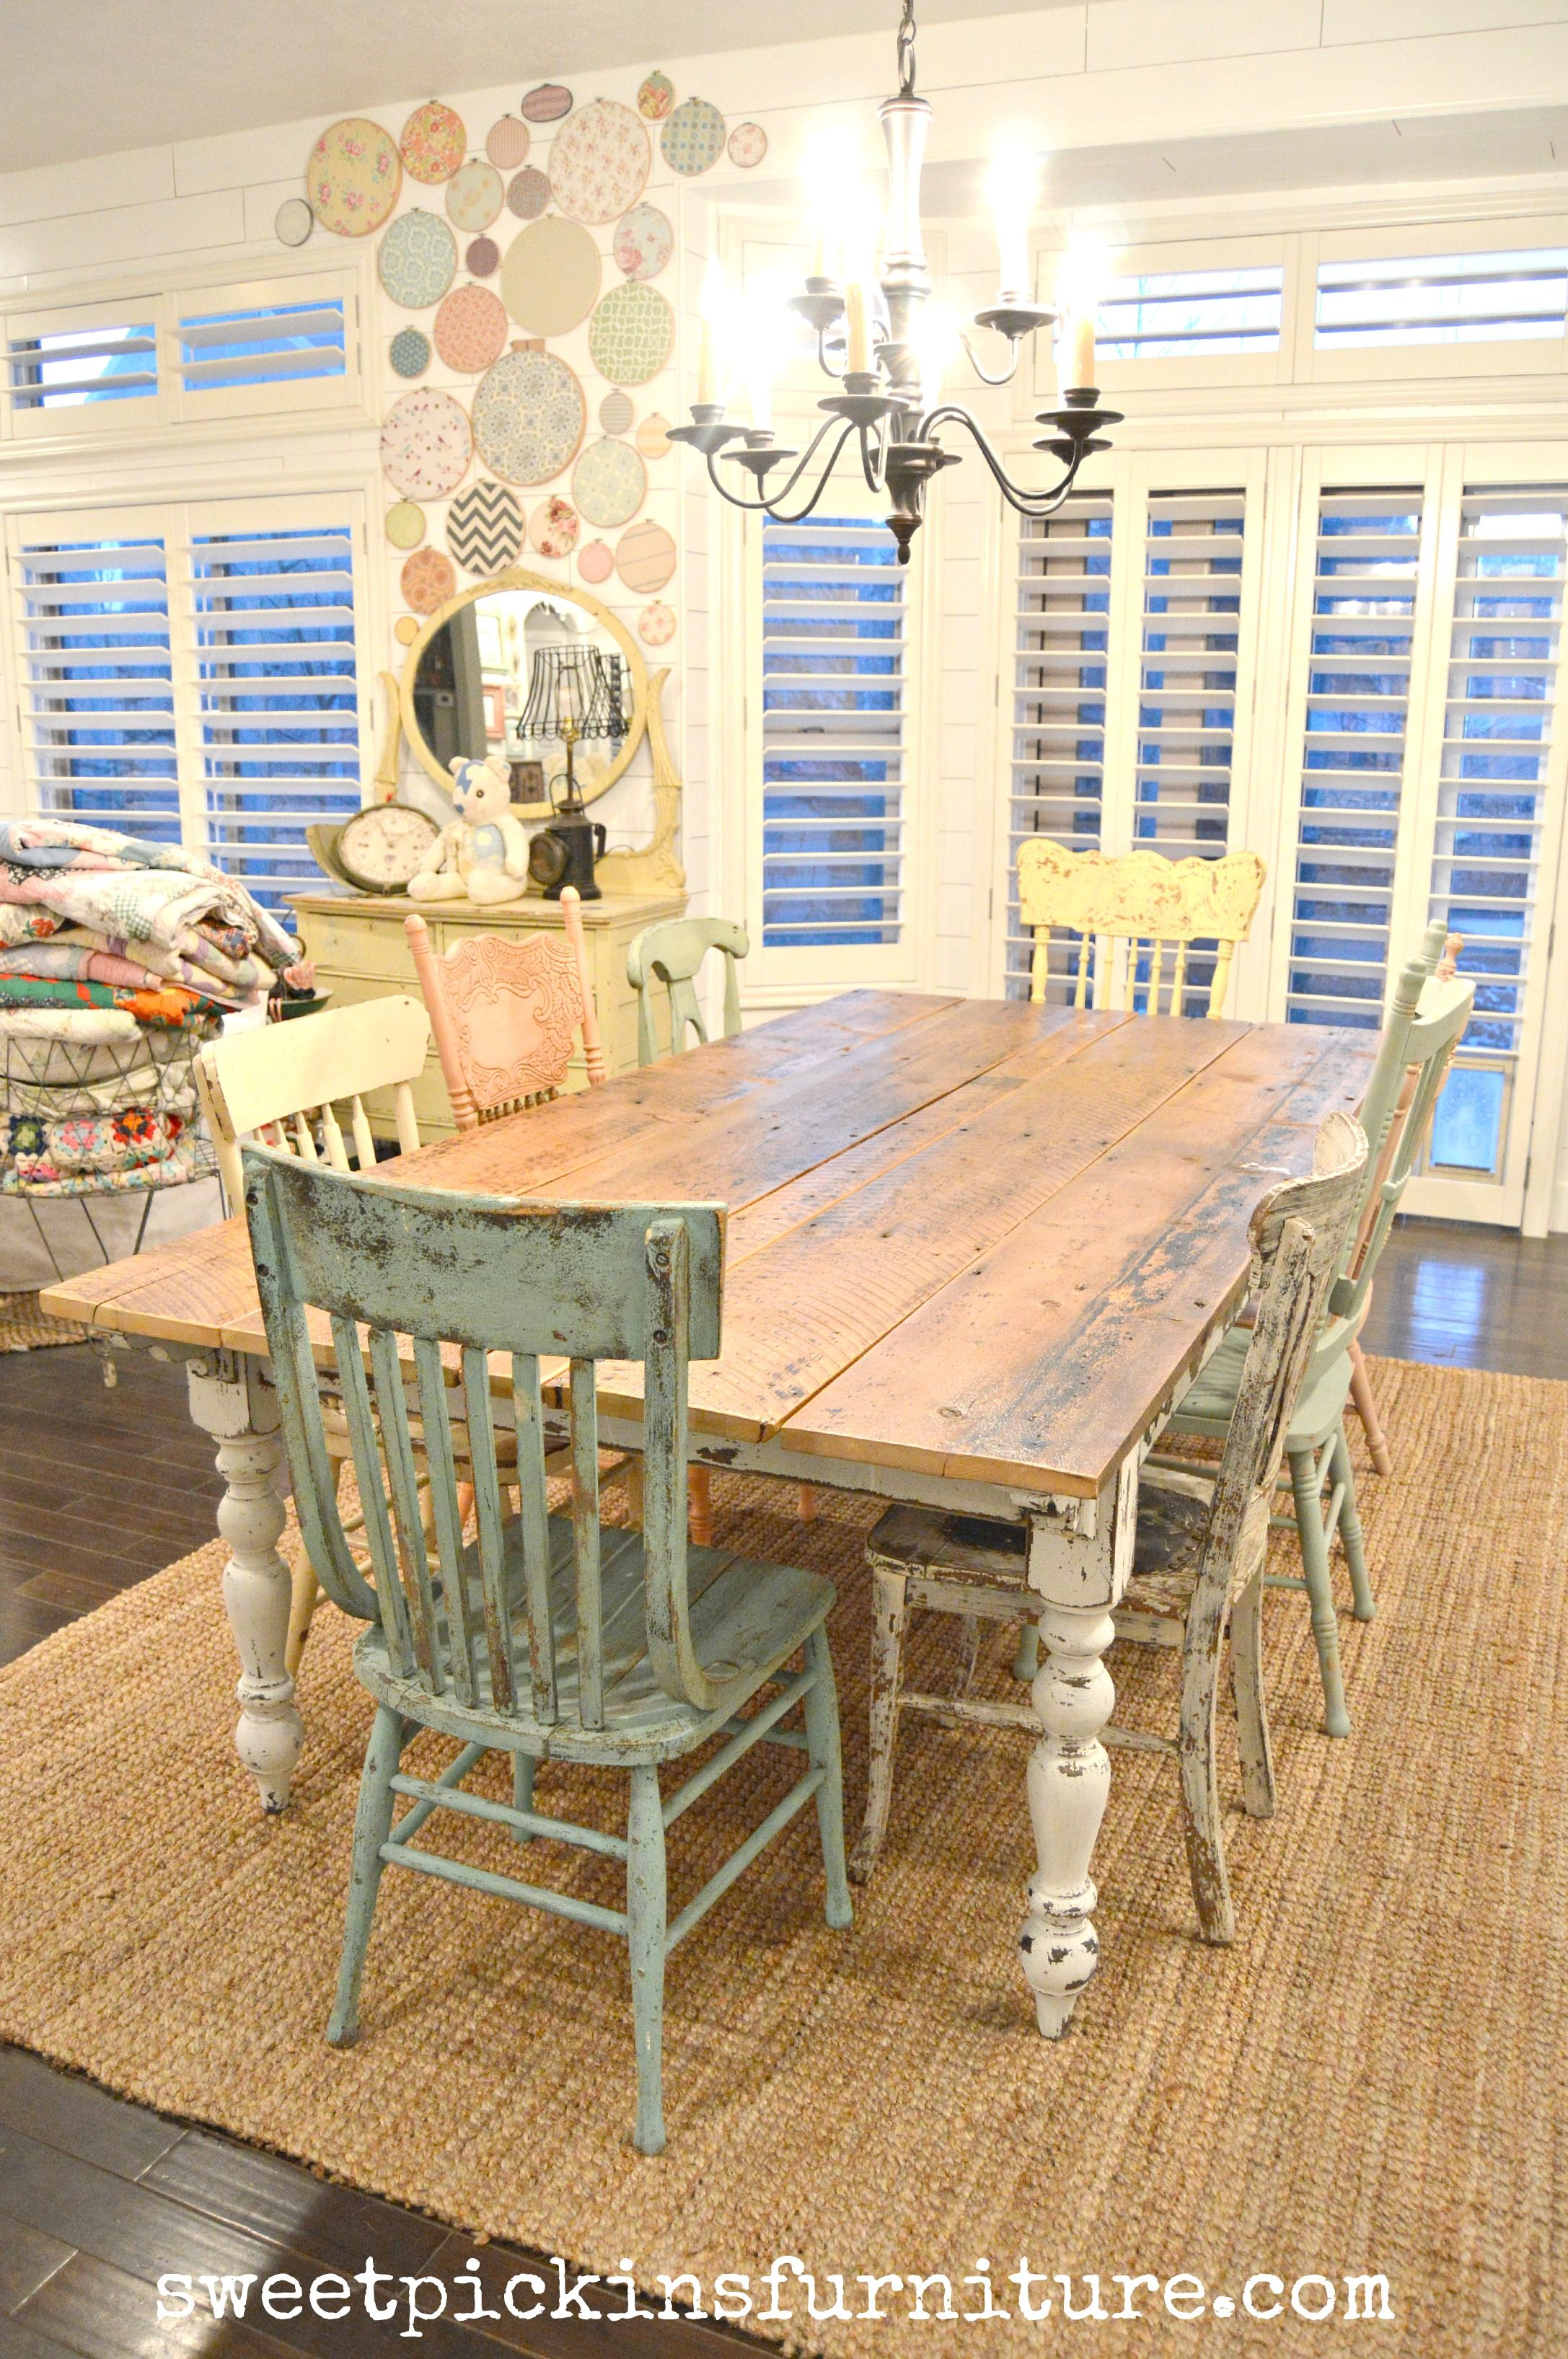 My new farm style table w/mismatched chairs! Farm style